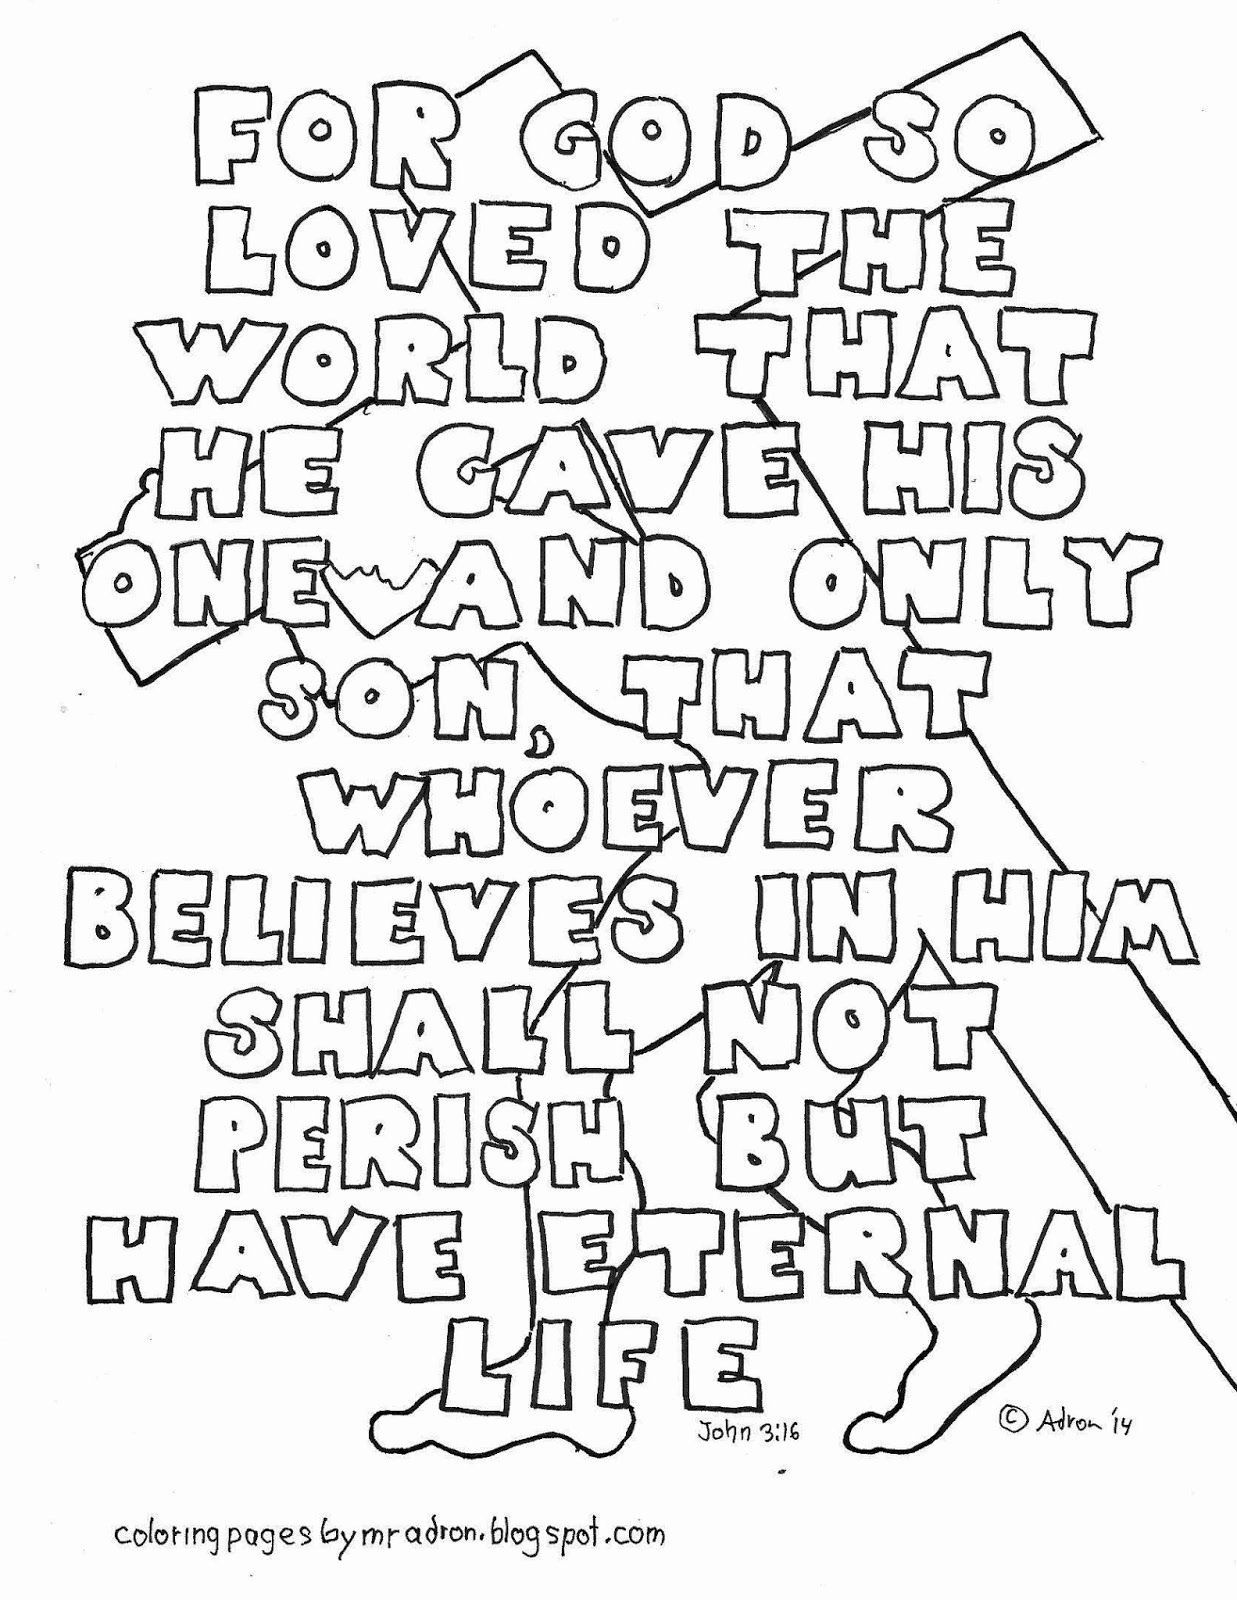 The World God Only Knows Coloring Pages Ideas Elegant John 3 16 Coloring Page With Sunday School Coloring Pages Bible Verse Coloring Bible Verse Coloring Page